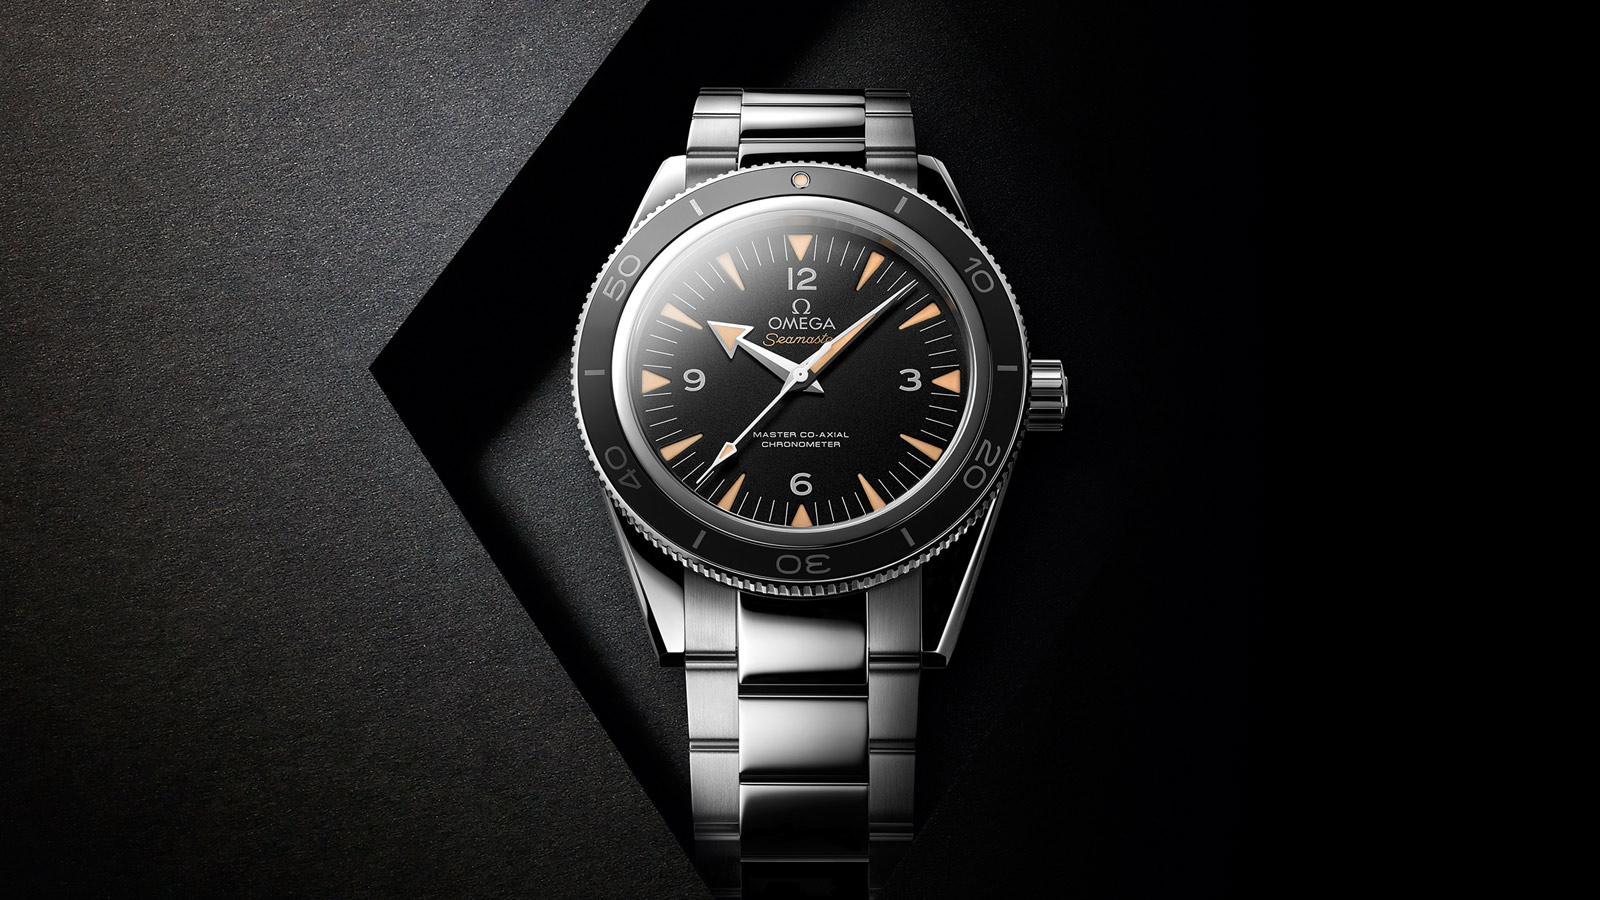 Seamaster Seamaster 300 Seamaster 300 Omega Master Co‑Axial 41 mm - 233.30.41.21.01.001 - Visualizzare 1